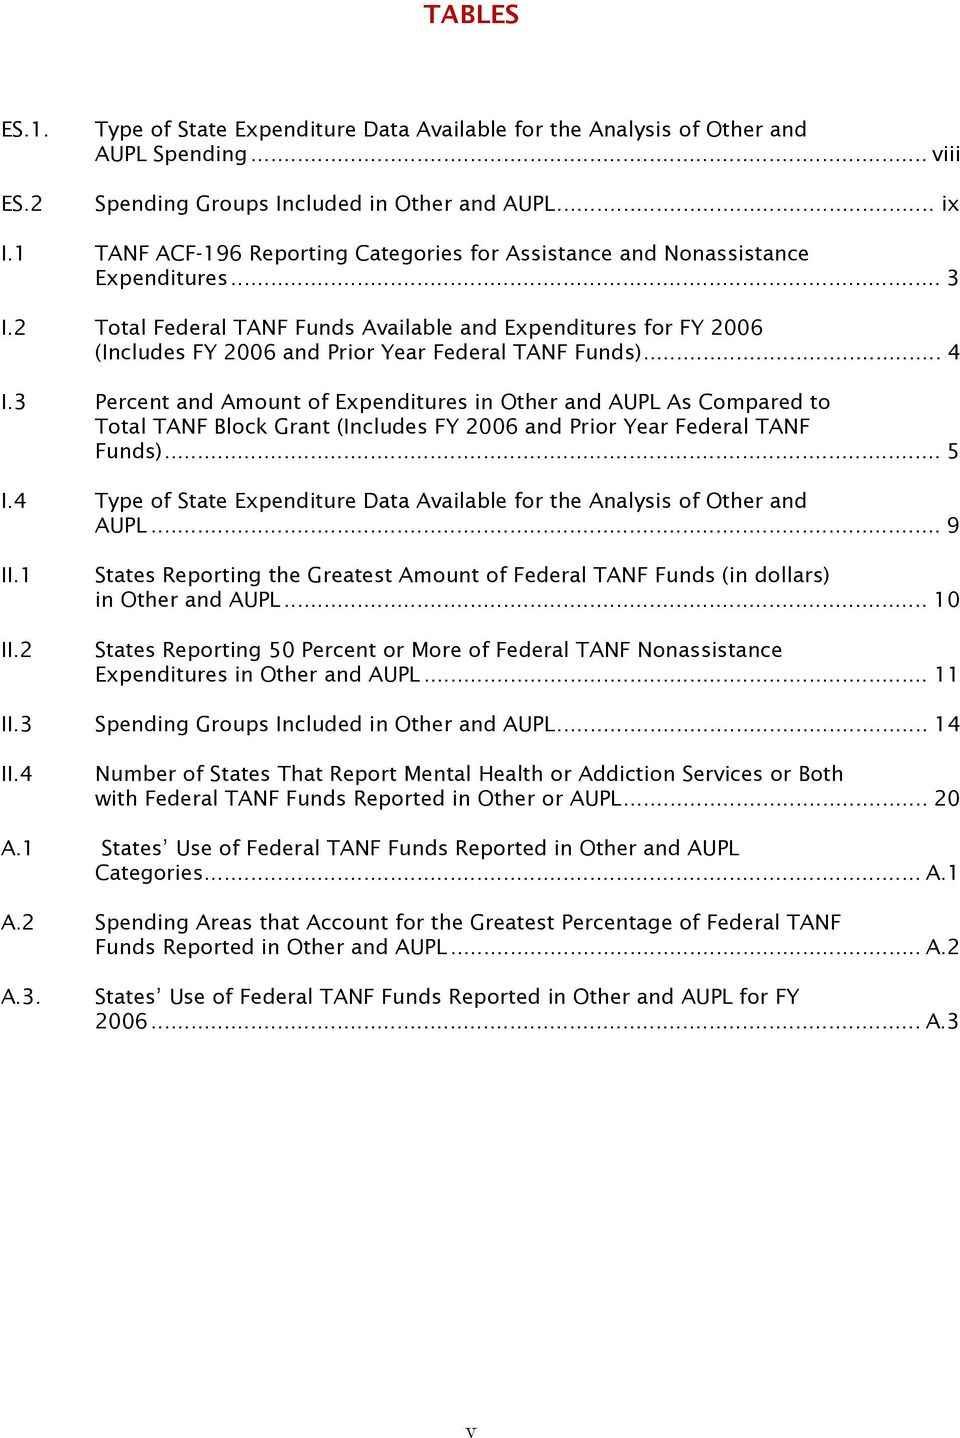 2 Total Federal TANF Funds Available and Expenditures for FY 2006 (Includes FY 2006 and Prior Year Federal TANF Funds)... 4 I.